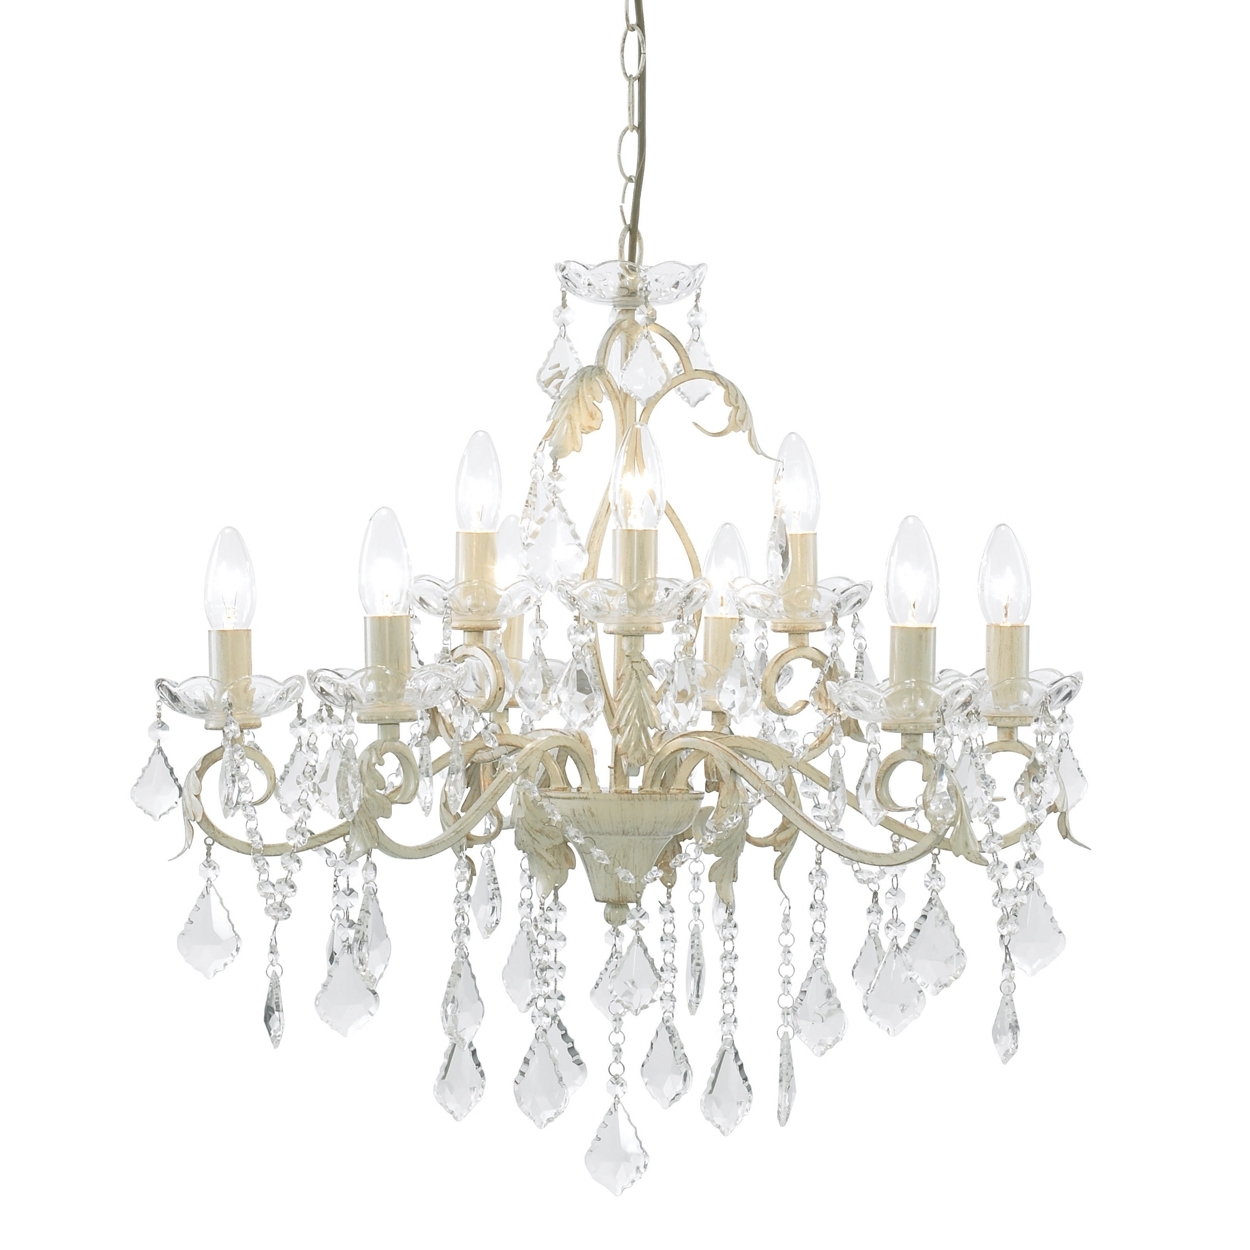 Well Liked Cream Gold Chandelier Regarding Cream And Gold Crystal Chandelier Crystal Chandelier Ideas For (View 15 of 15)